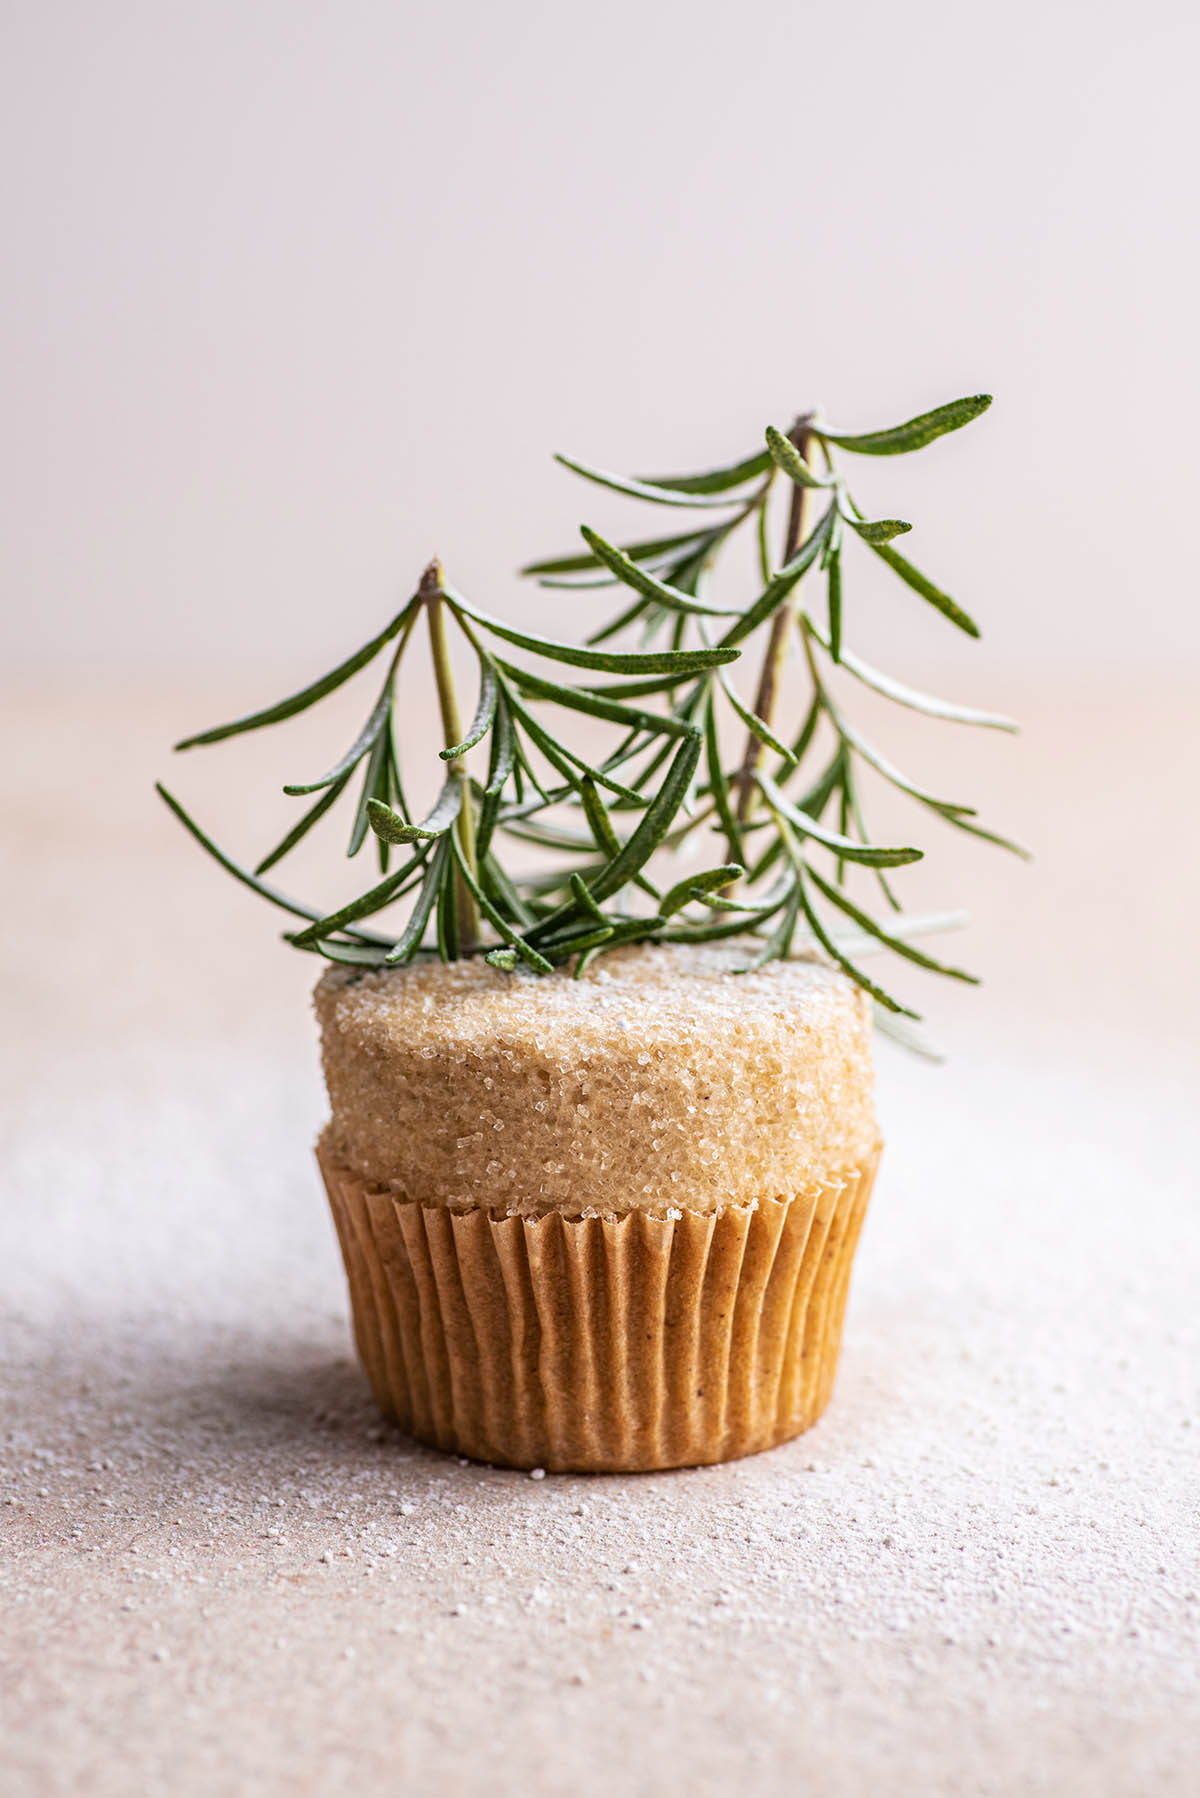 A cupcake decorated with a flat top of buttercream, coarse sugar, and rosemary trees.